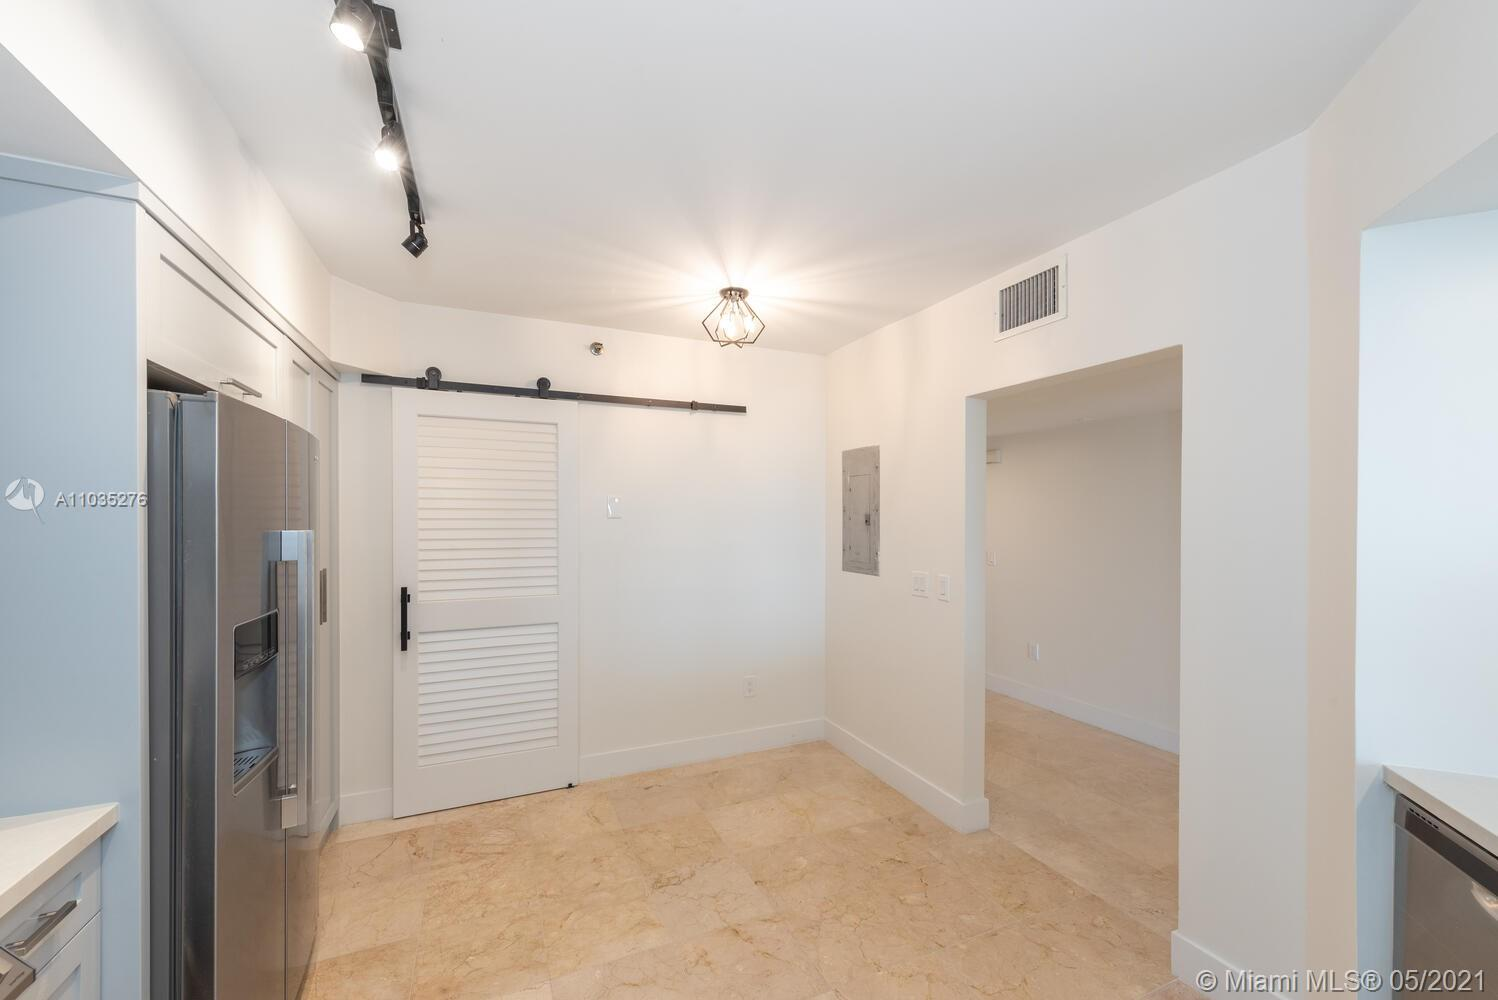 Photo of 8925 Collins Ave #4F, Surfside, Florida, 33154 - Viritually staged living room.